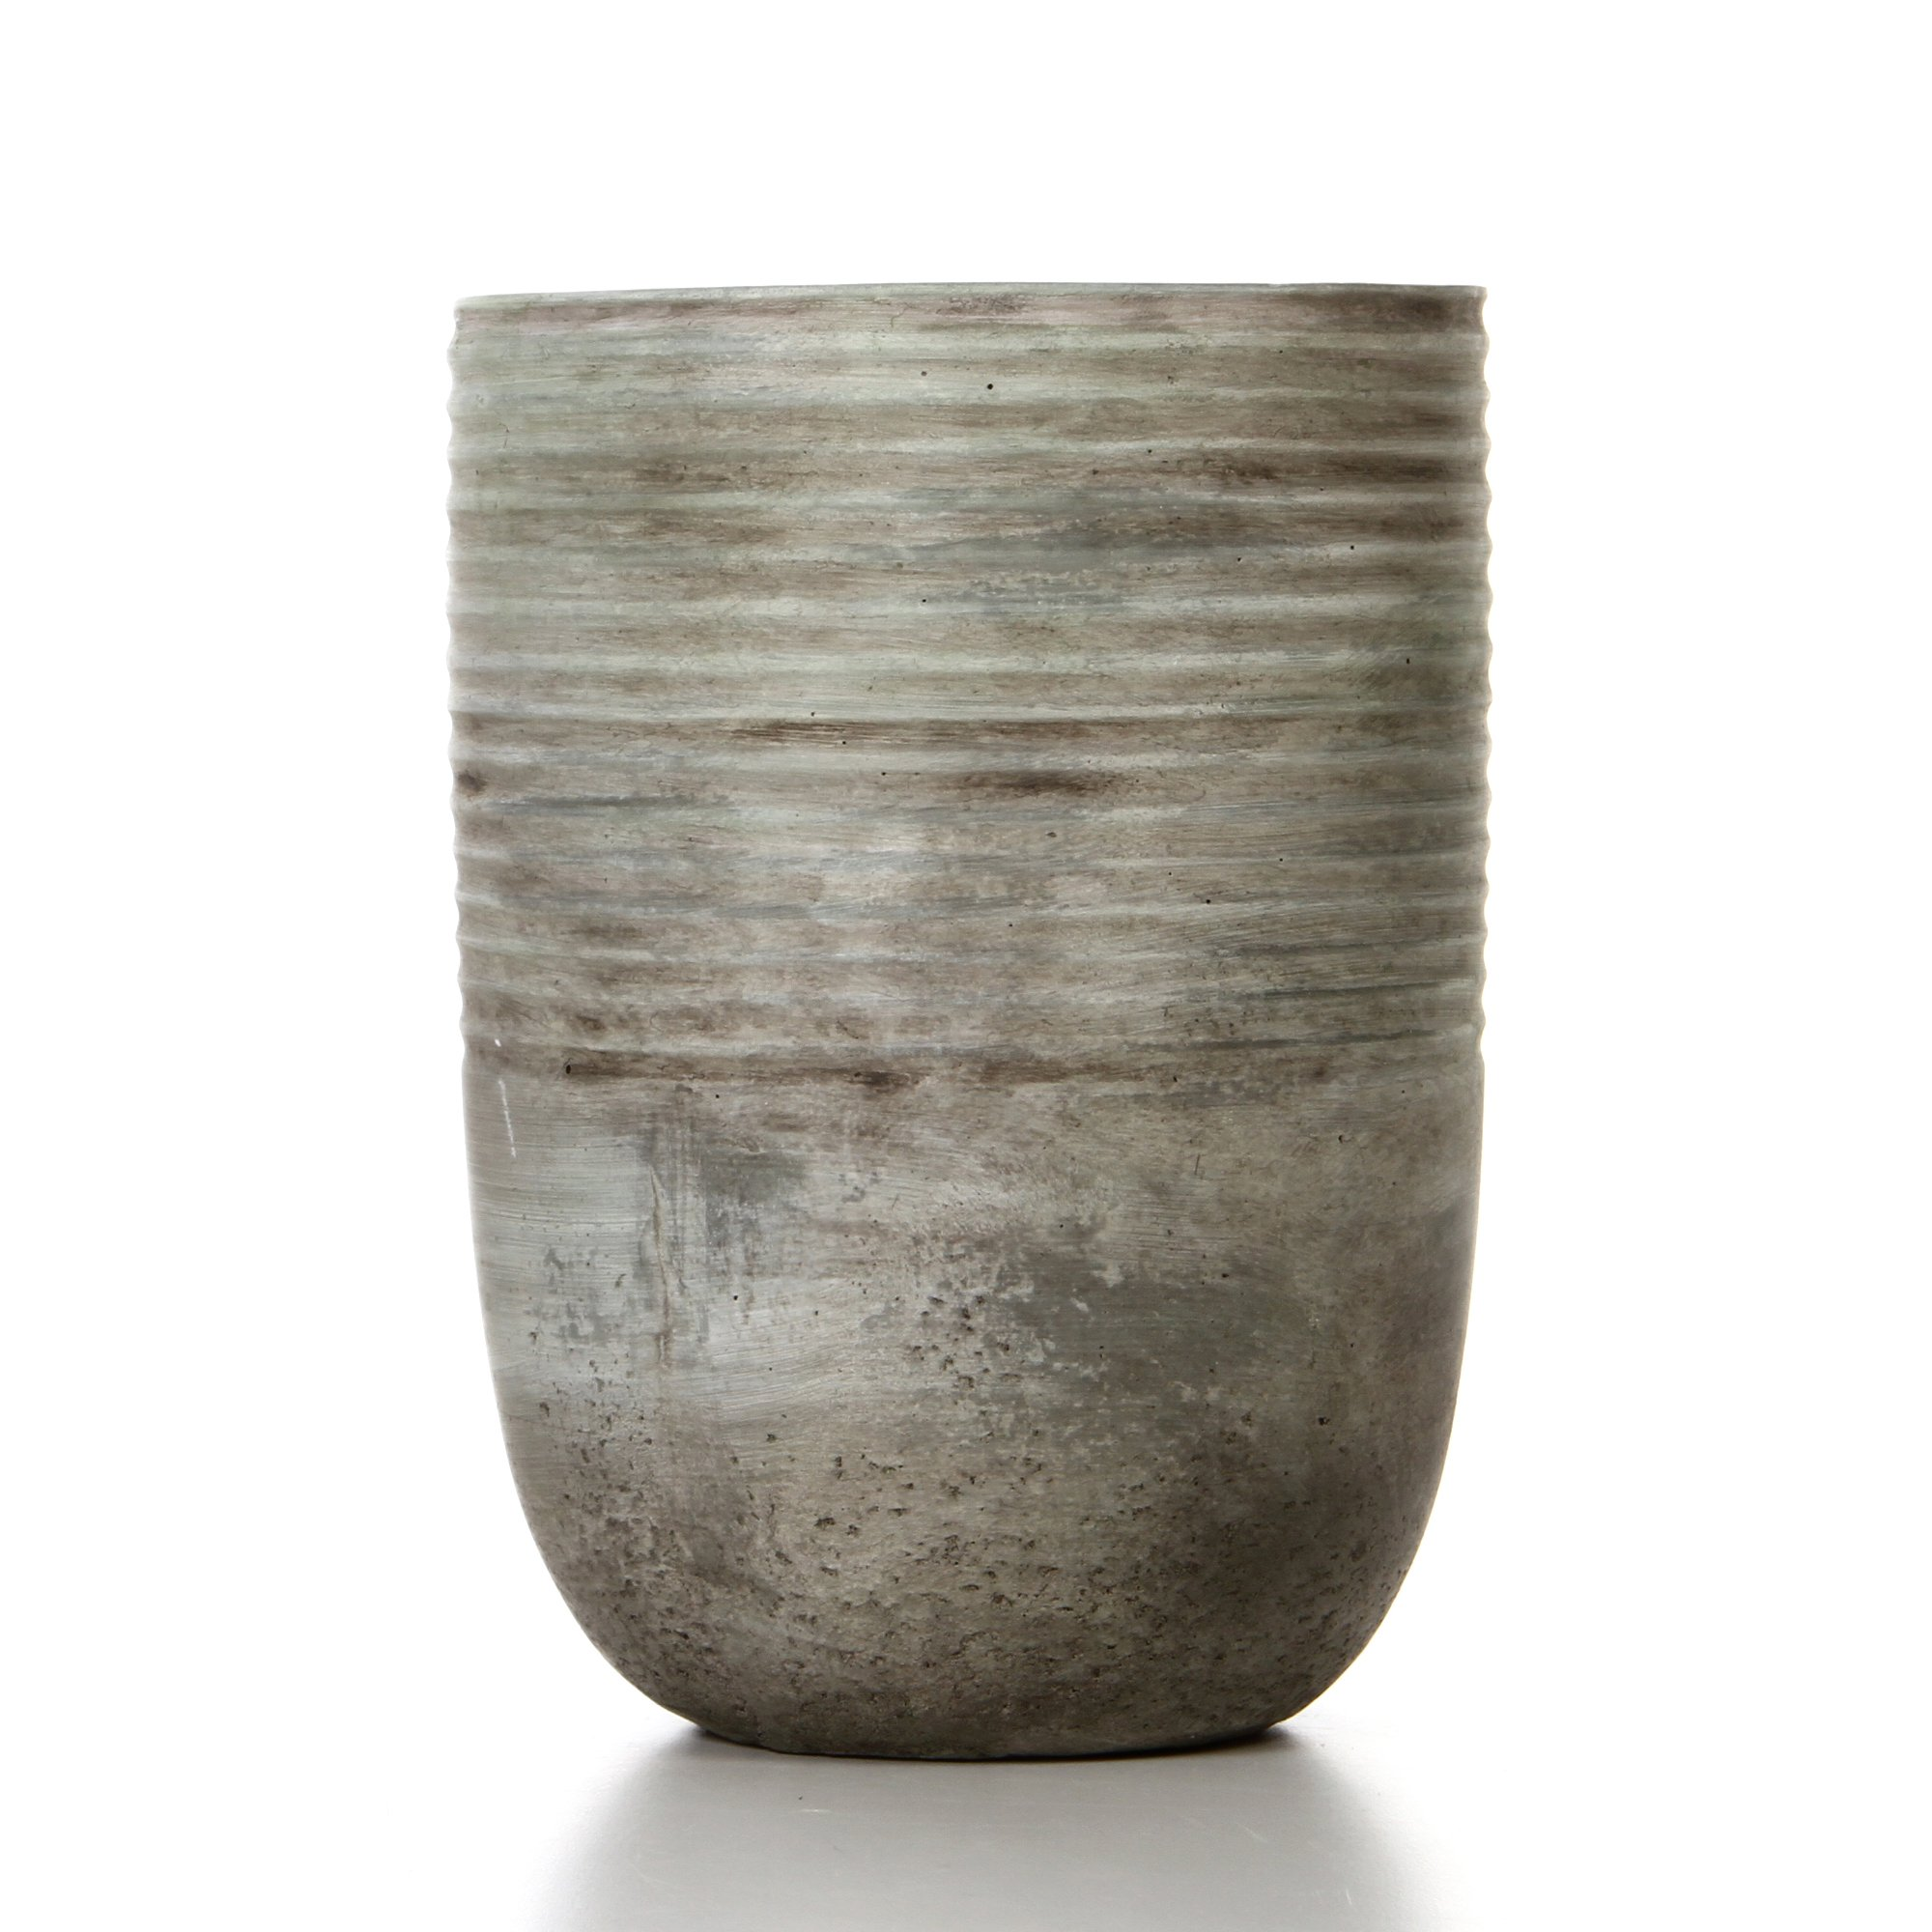 Hosley's 7.5'' High, Ceramic Planter. Ideal Gift for Weddings, Contemporary Decor, Party, Spa, PTOO O6